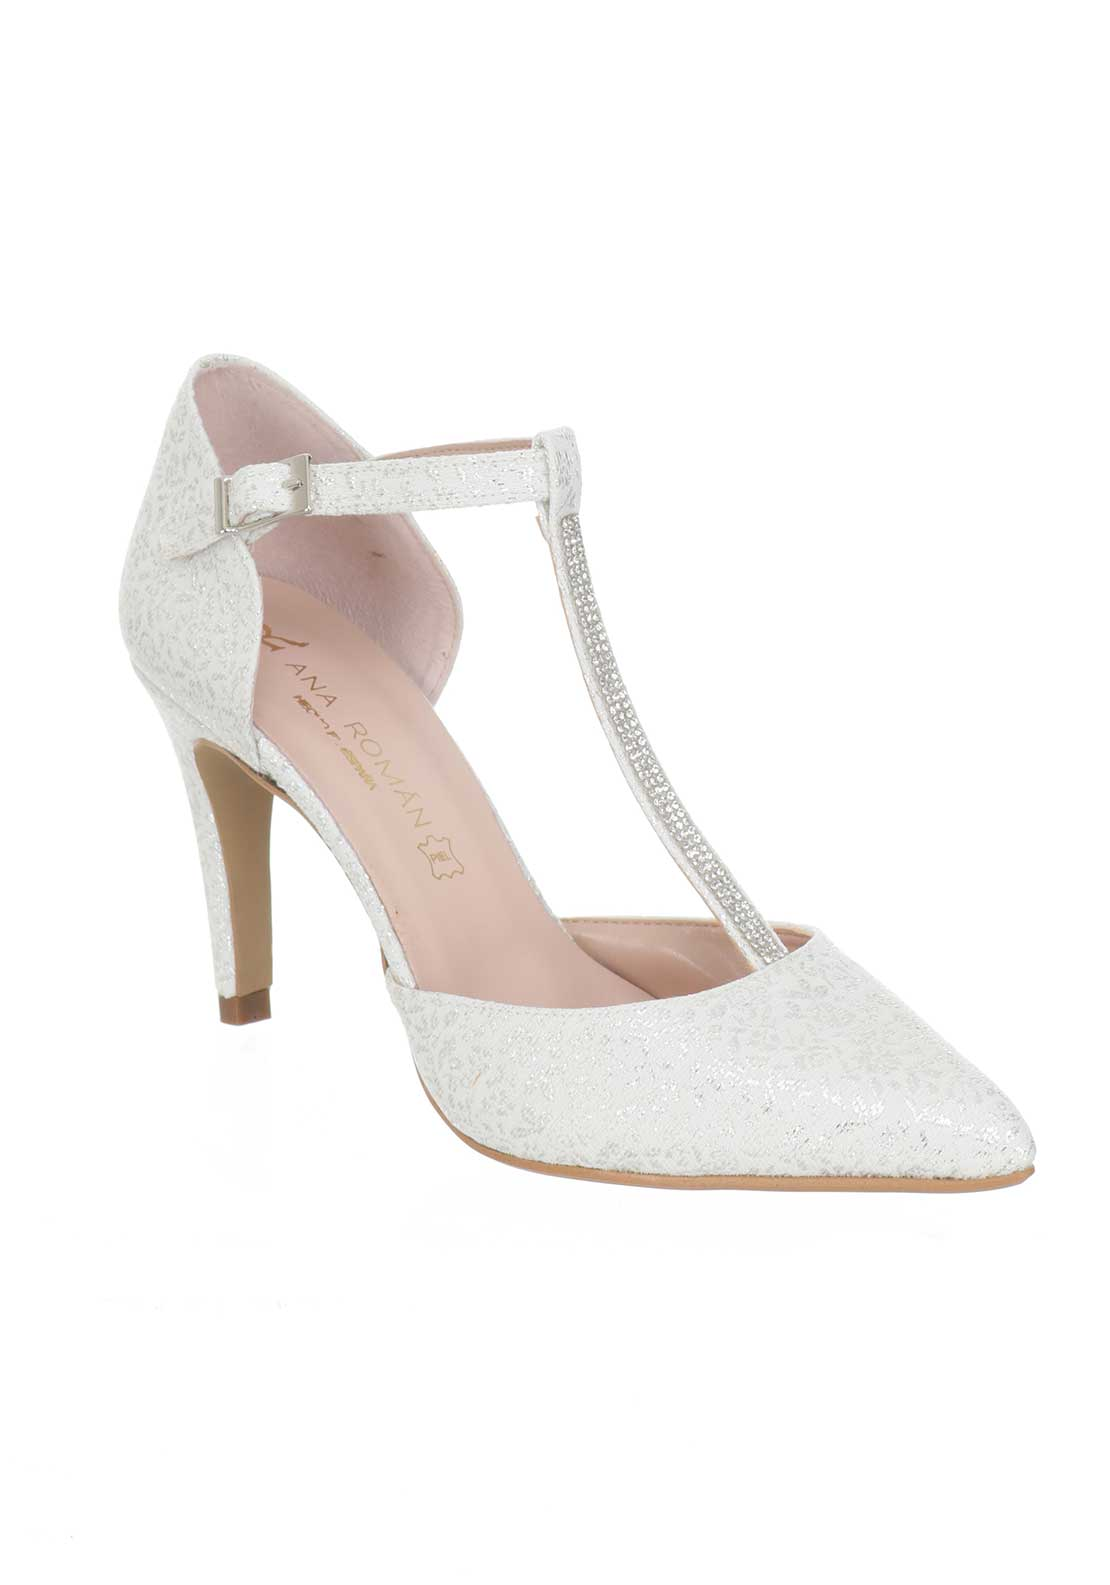 Ana Roman Ceremonial T-Bar Heeled Court Shoes, White